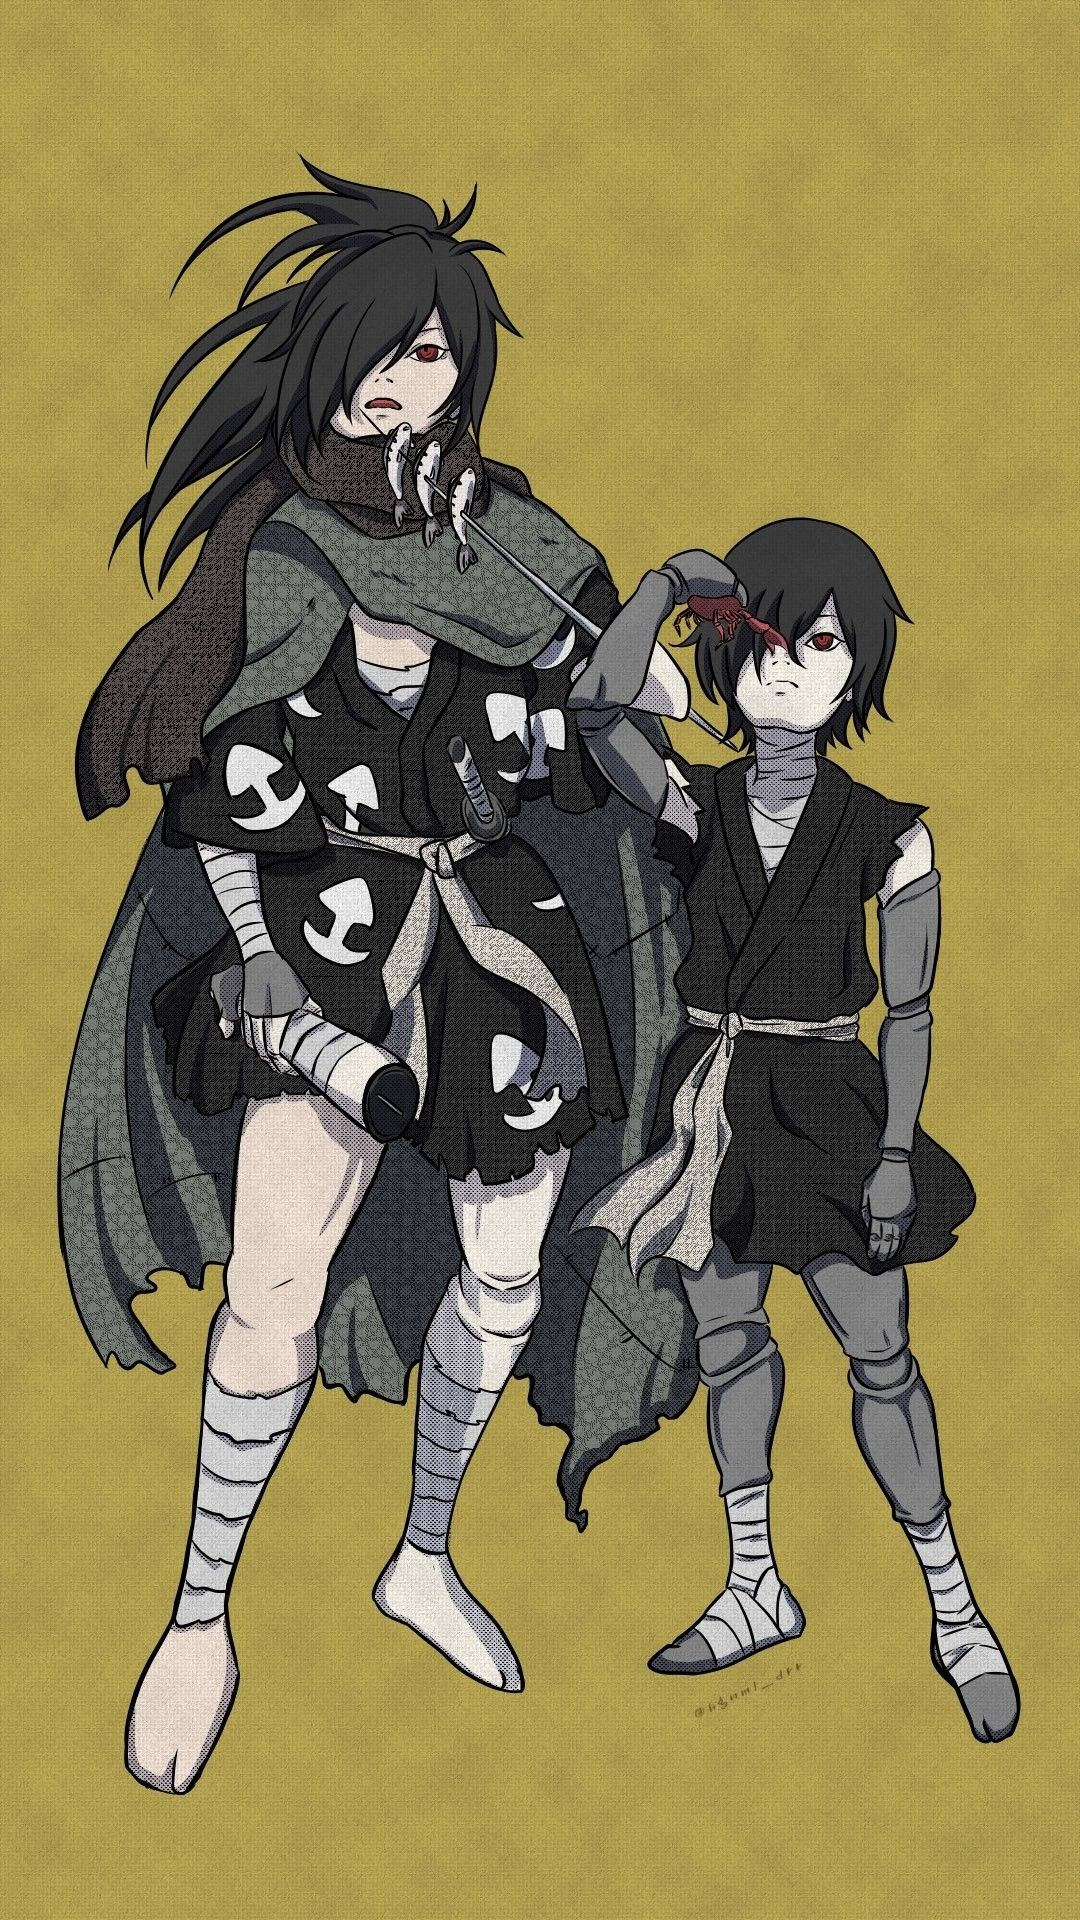 Pin by Cecilia Bianca on Anime Anime, Cartoon, Monster